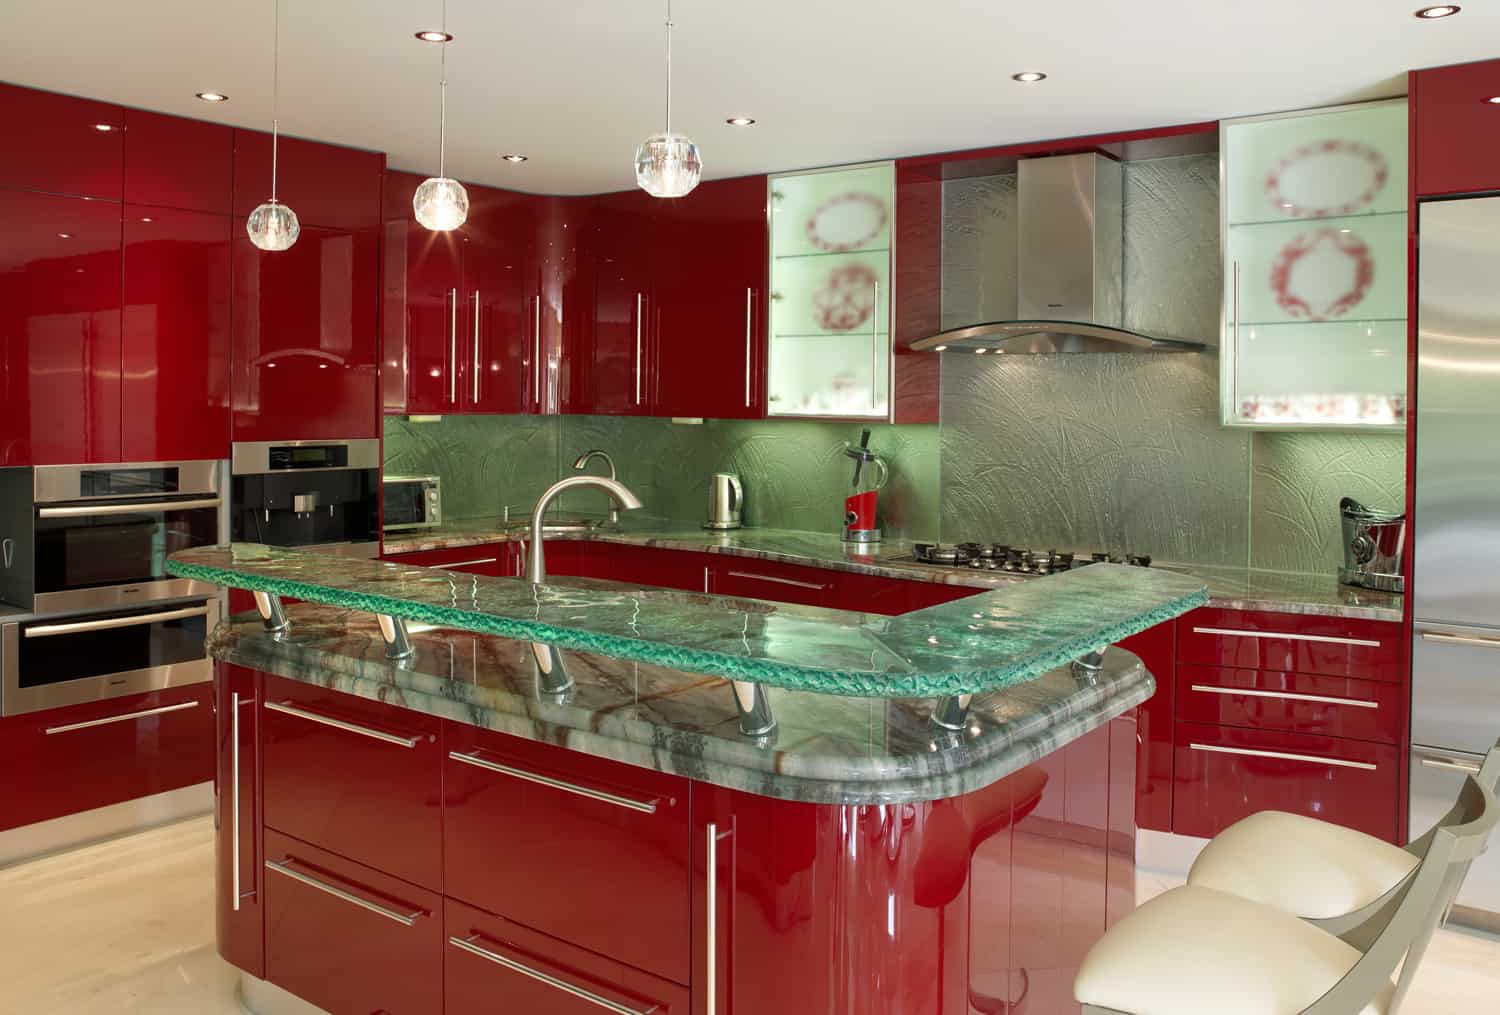 Glasplatte Küchenwand Modern Kitchen Countertops From Unusual Materials 30 Ideas